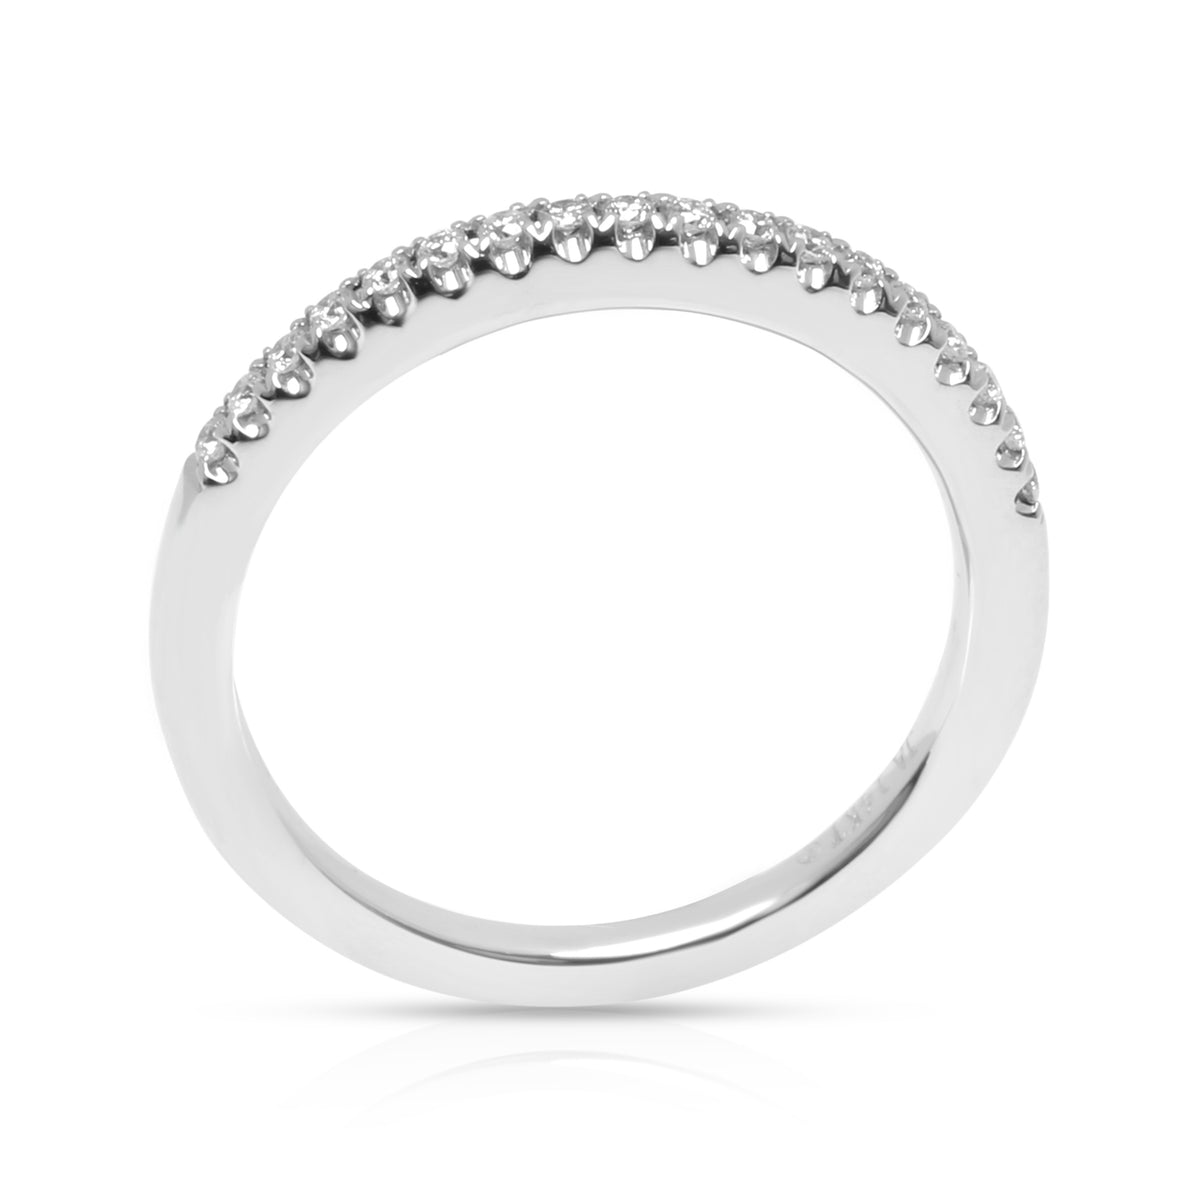 James Allen Diamond Wedding Band in 14K White Gold 0.11 CTW